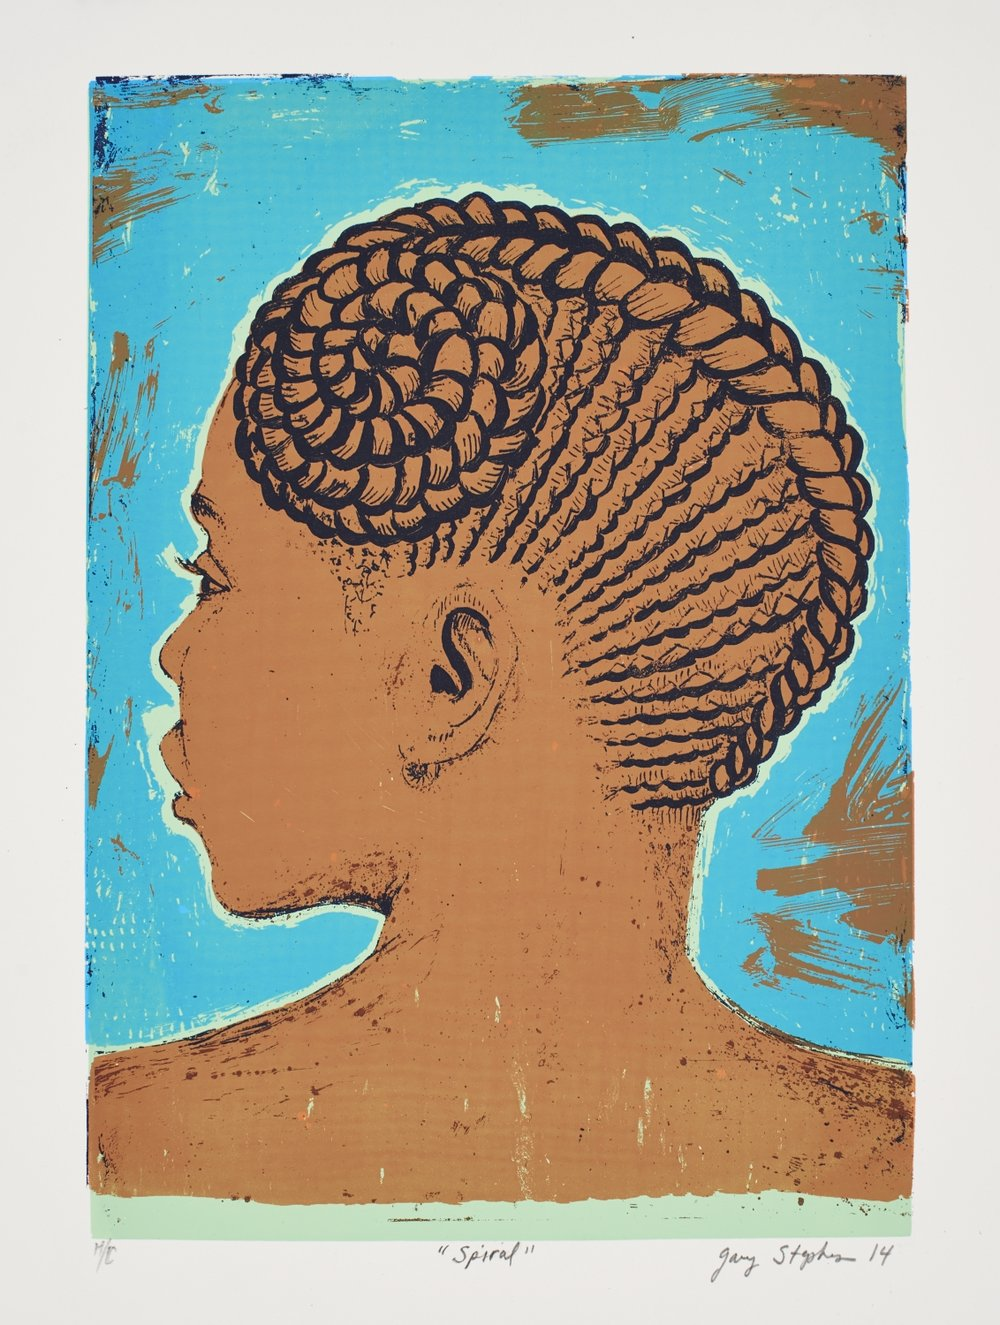 Spiral   Gary Stephens  Silkscreen on paper  Edition of 44  R 3 200.00 excl. vat